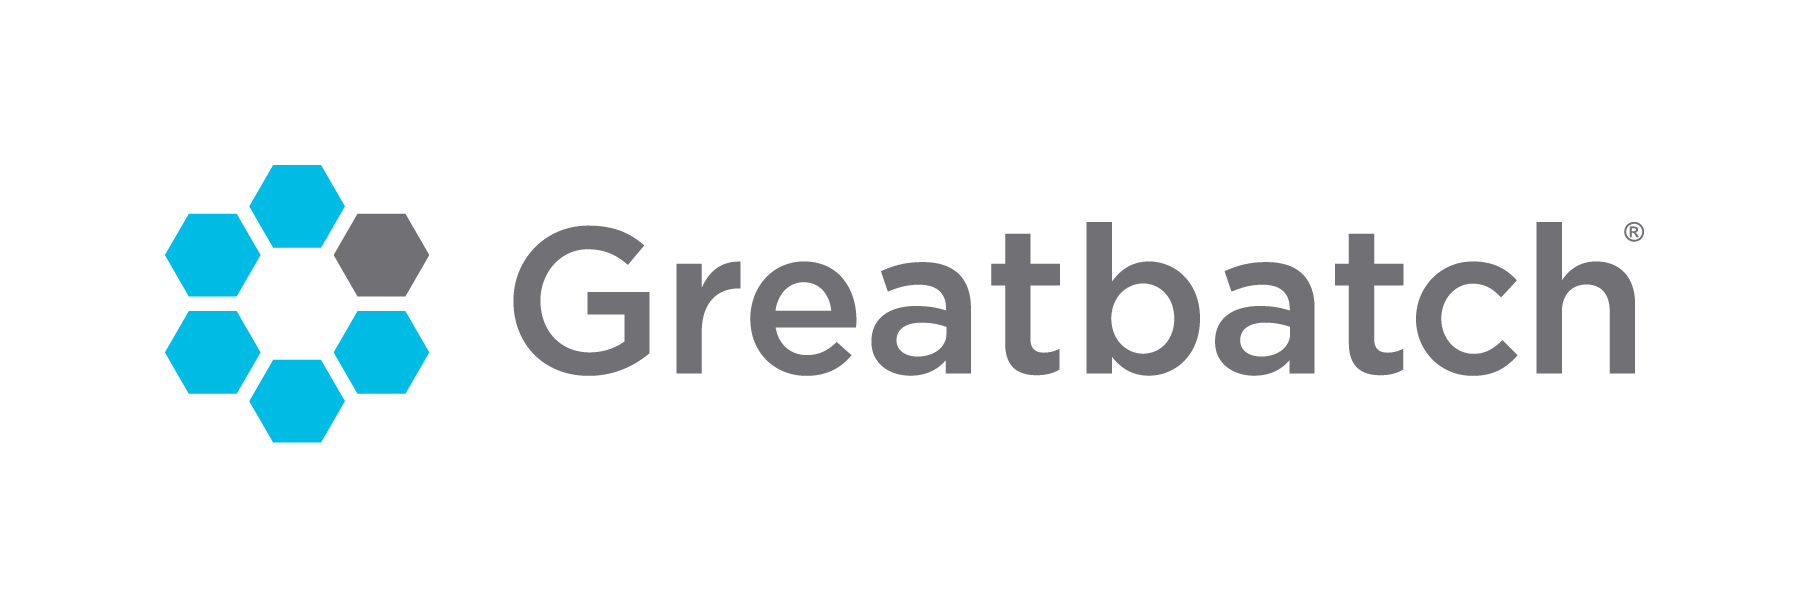 Greatbatch Logo